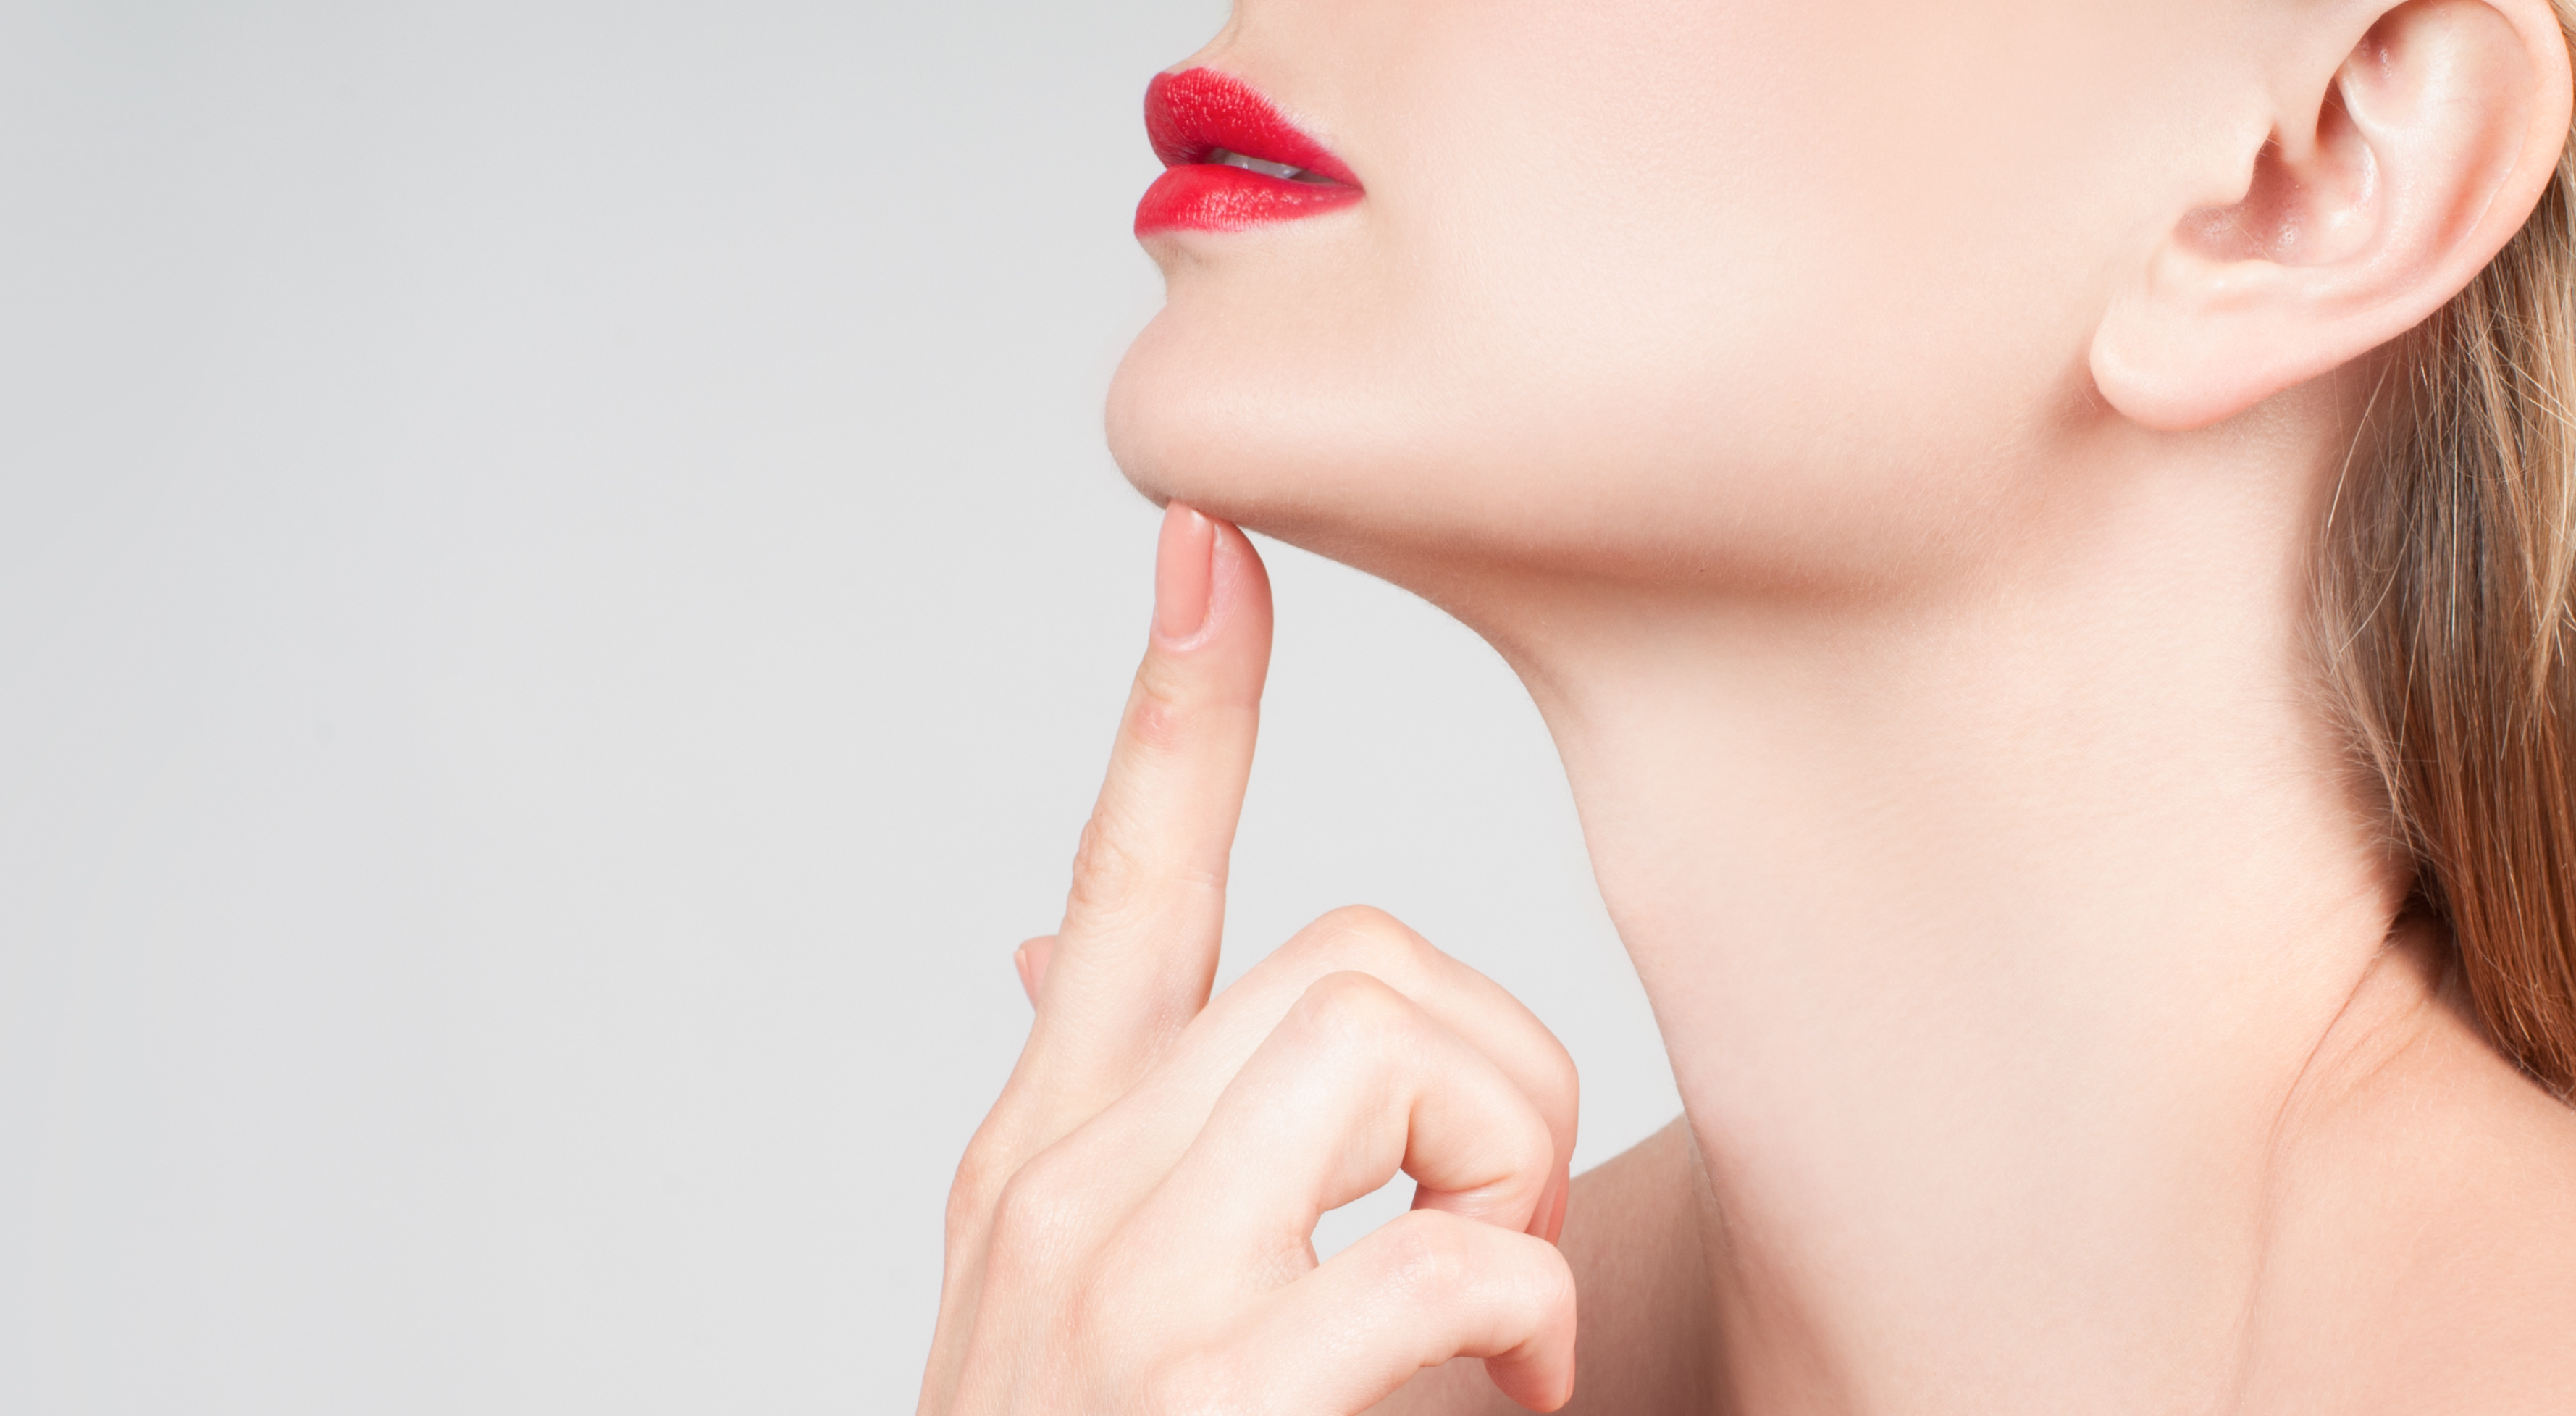 neck rejuvenation is possible with liposuction, kybella, neck lift or coolsculpting